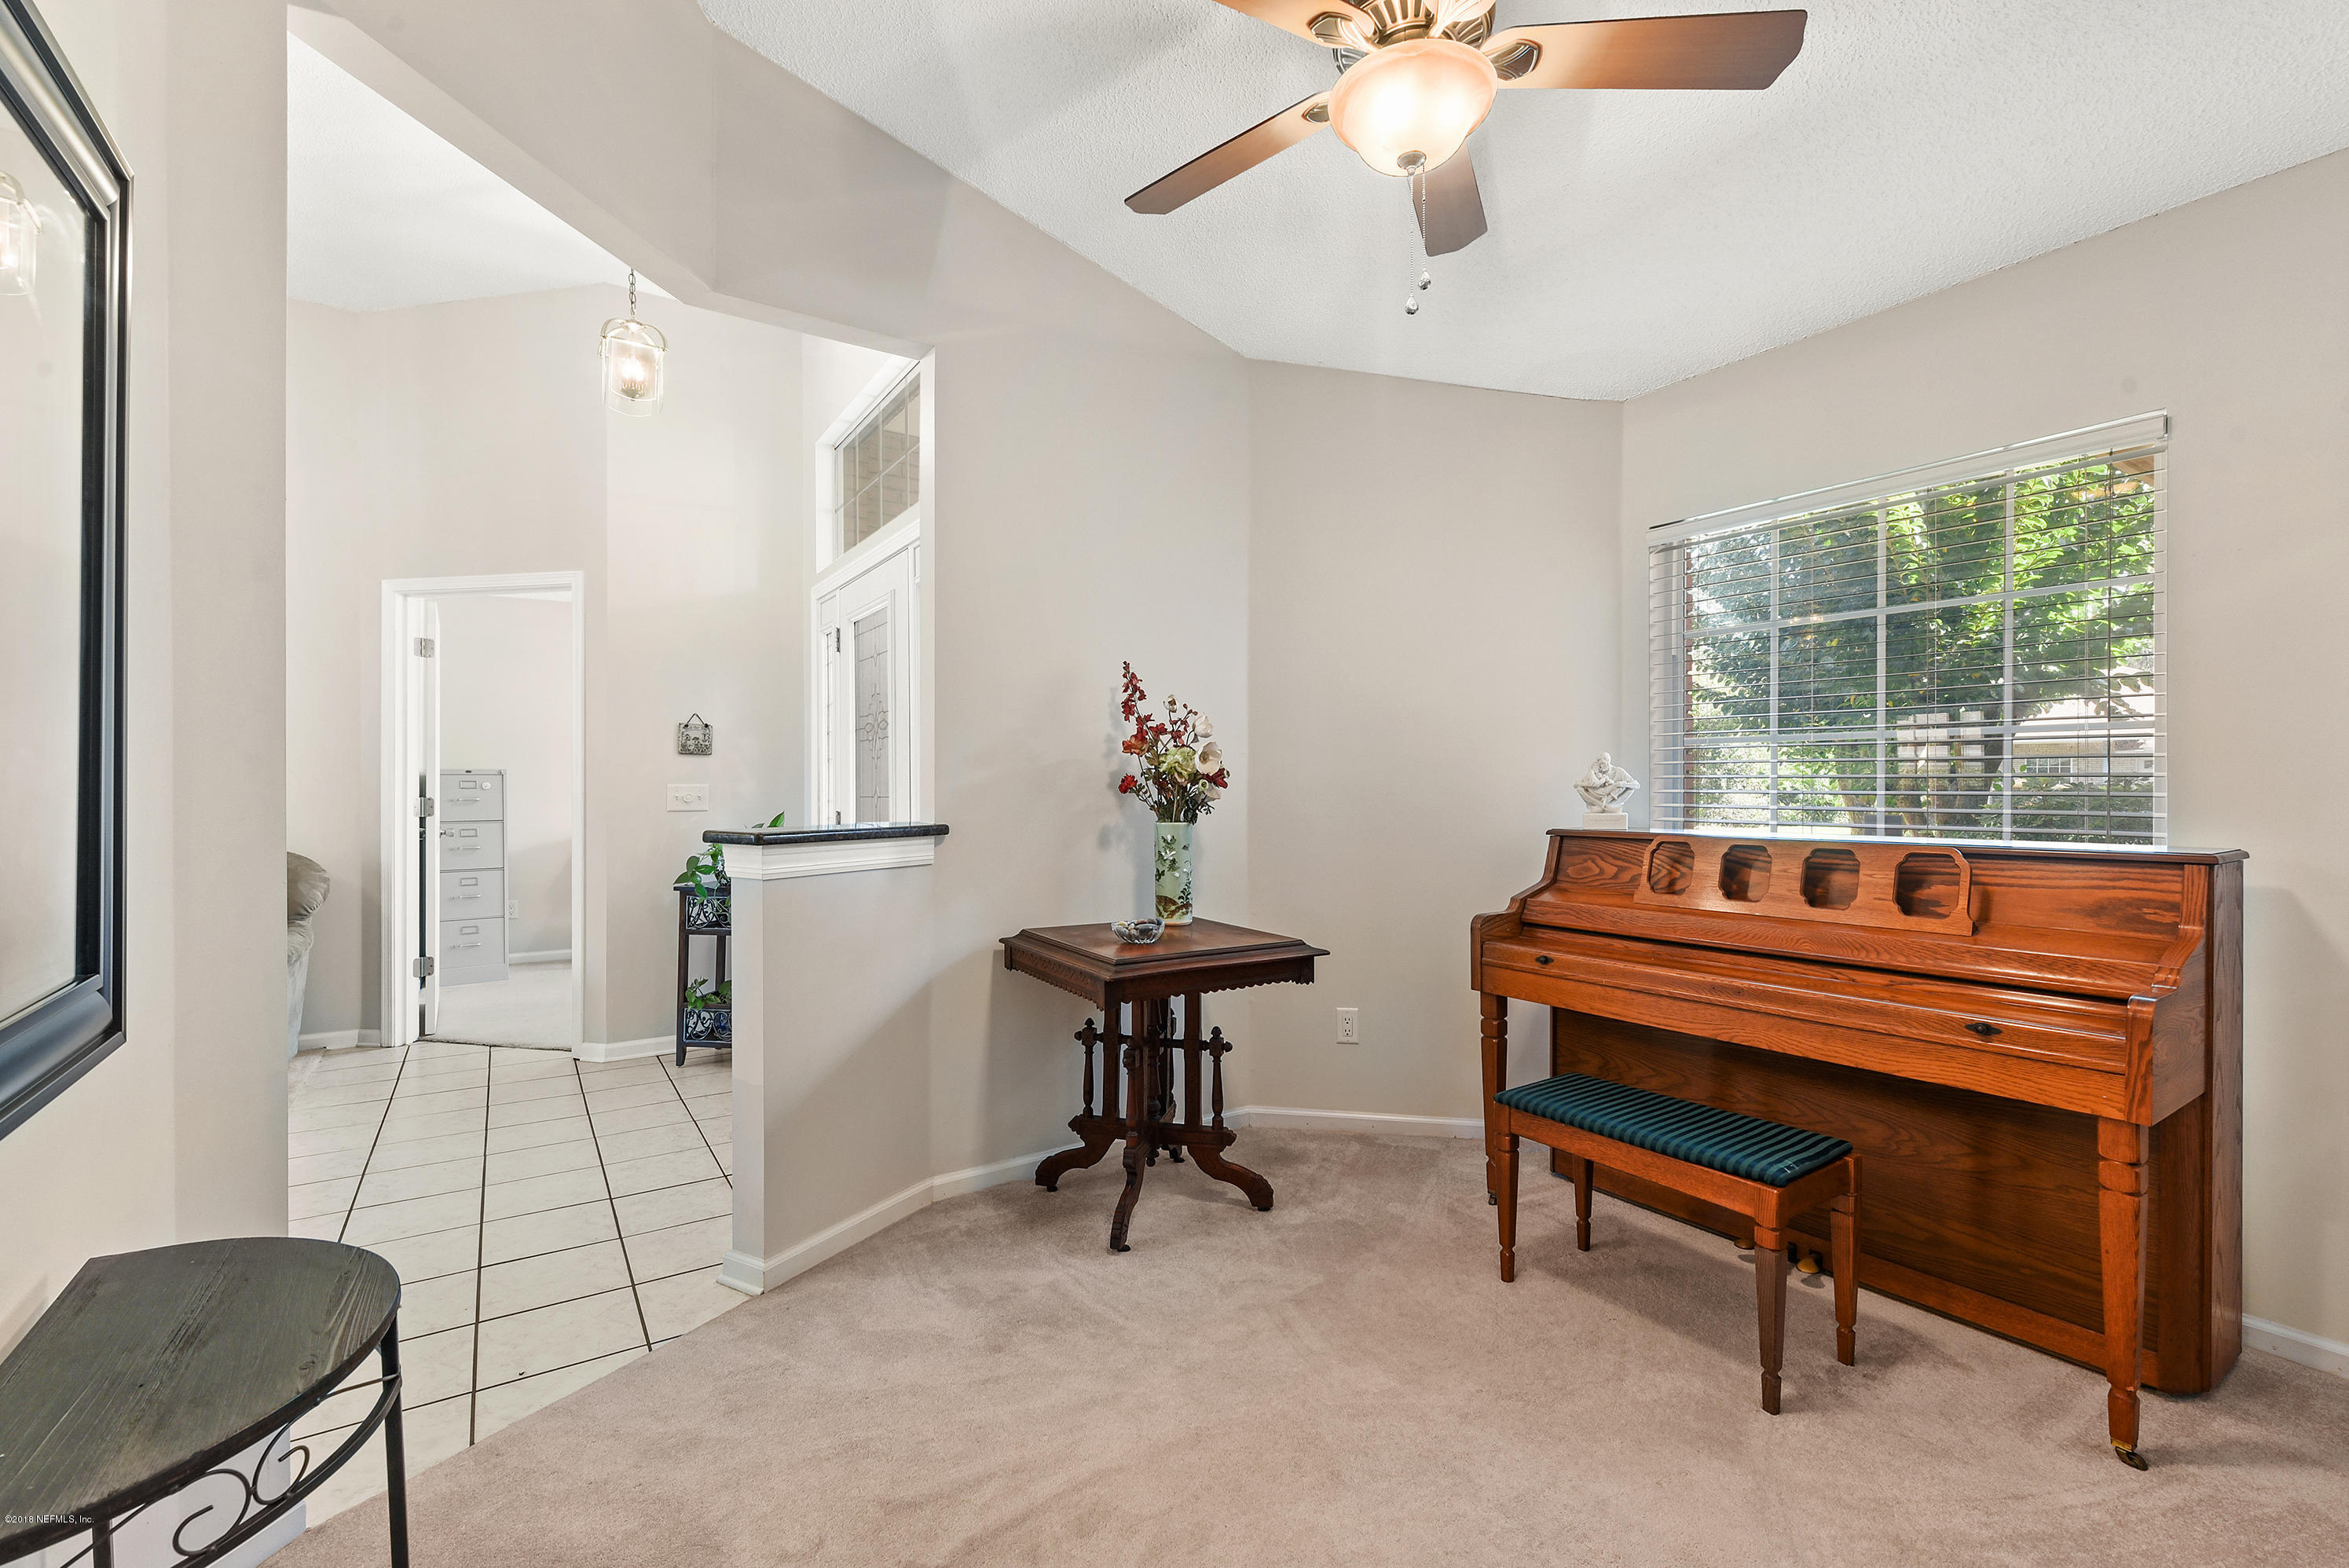 4392 POPPY TREE, JACKSONVILLE, FLORIDA 32258, 4 Bedrooms Bedrooms, ,2 BathroomsBathrooms,Residential - single family,For sale,POPPY TREE,951415